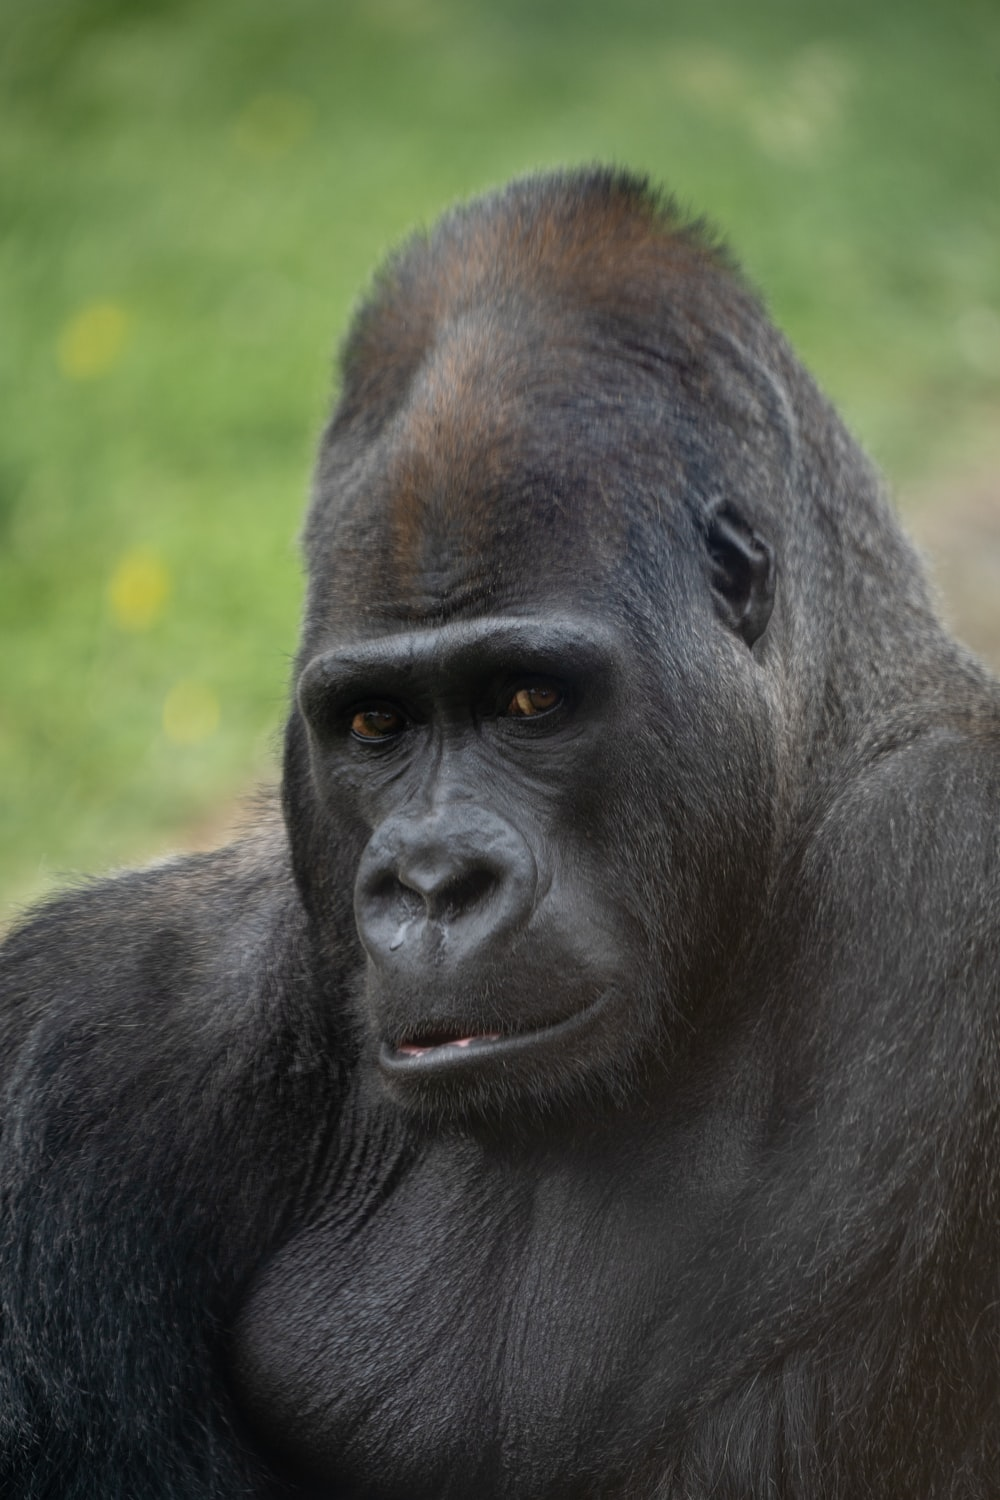 black gorilla in close up photography during daytime